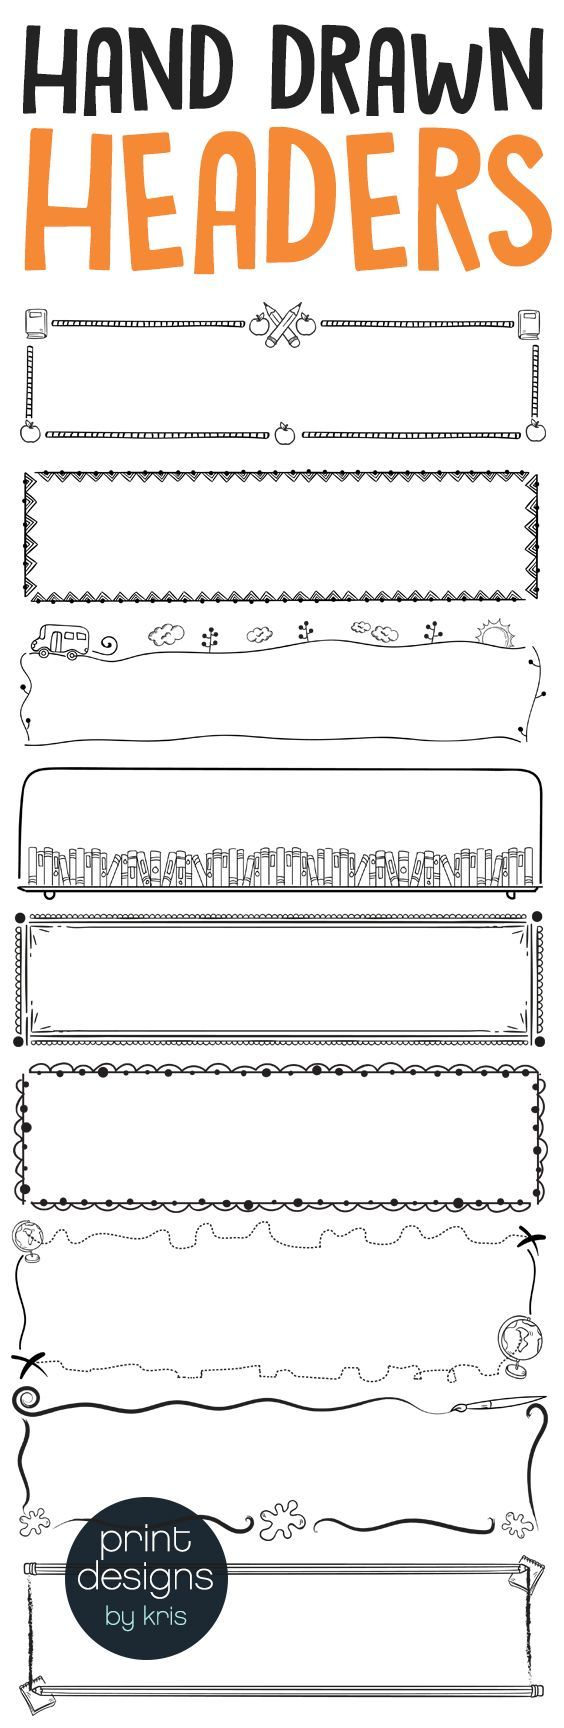 medium resolution of Hand drawn header boxes perfect for dressing up a worksheet